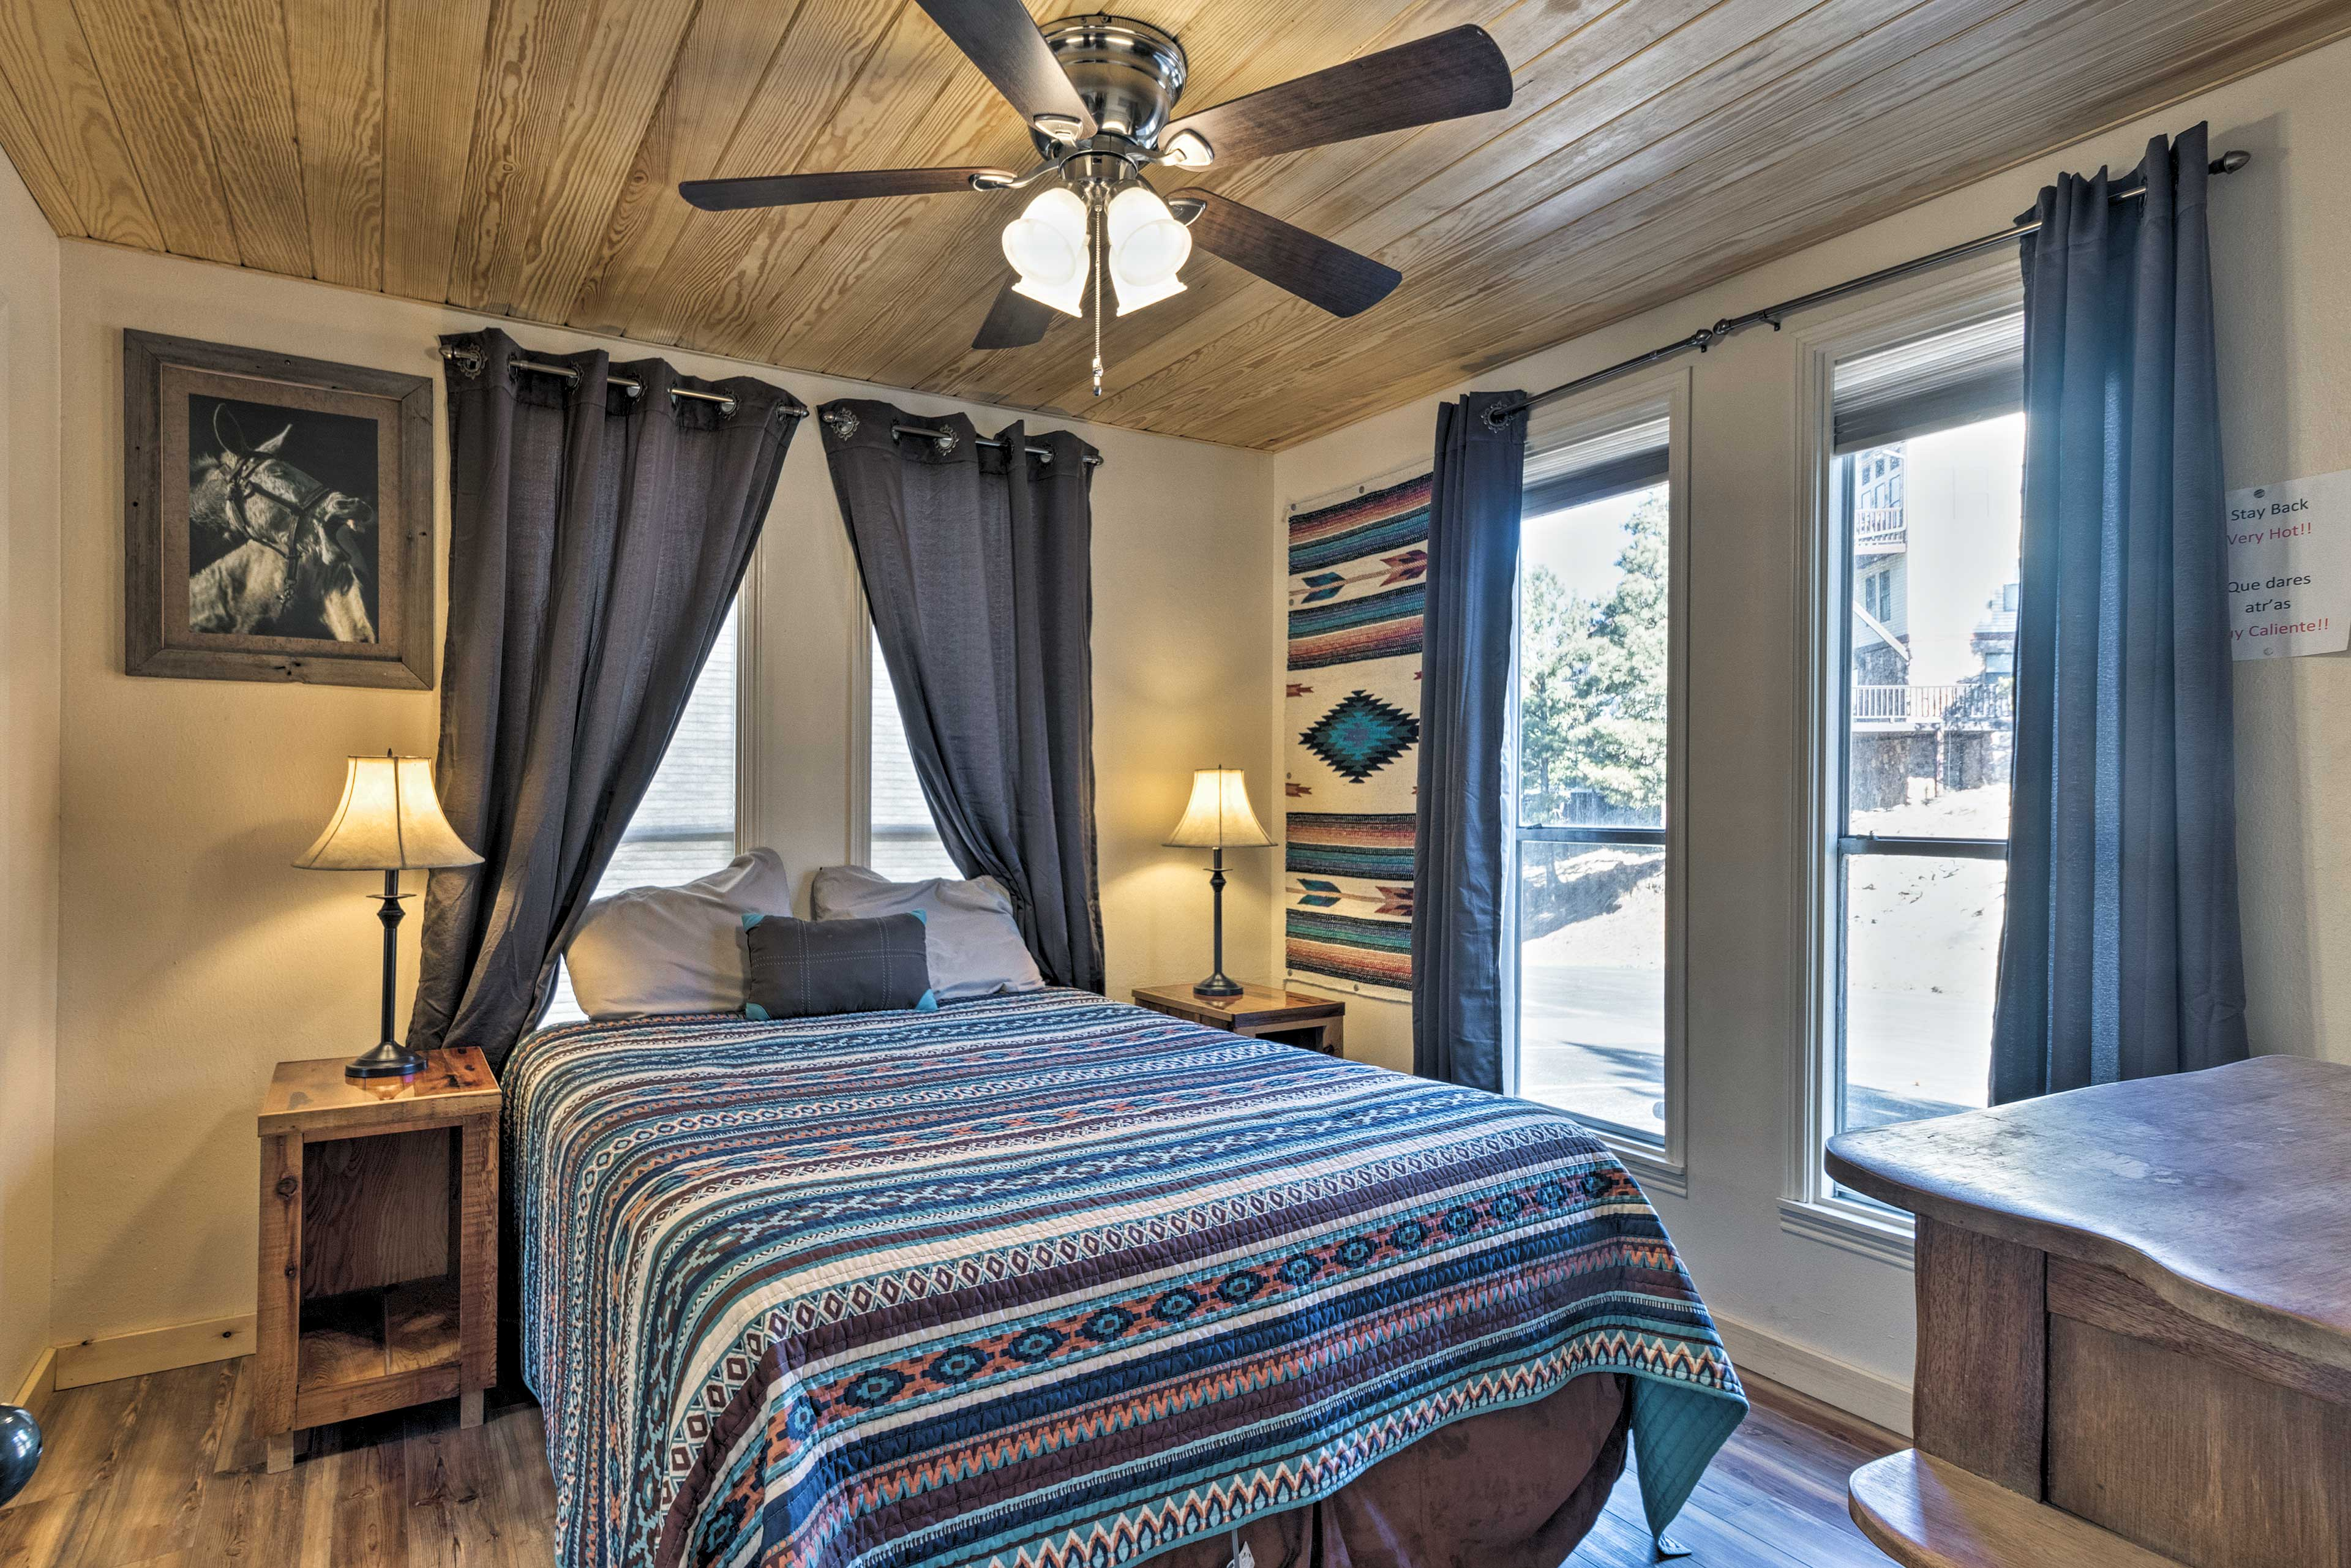 This room sleeps 2 in a queen bed.